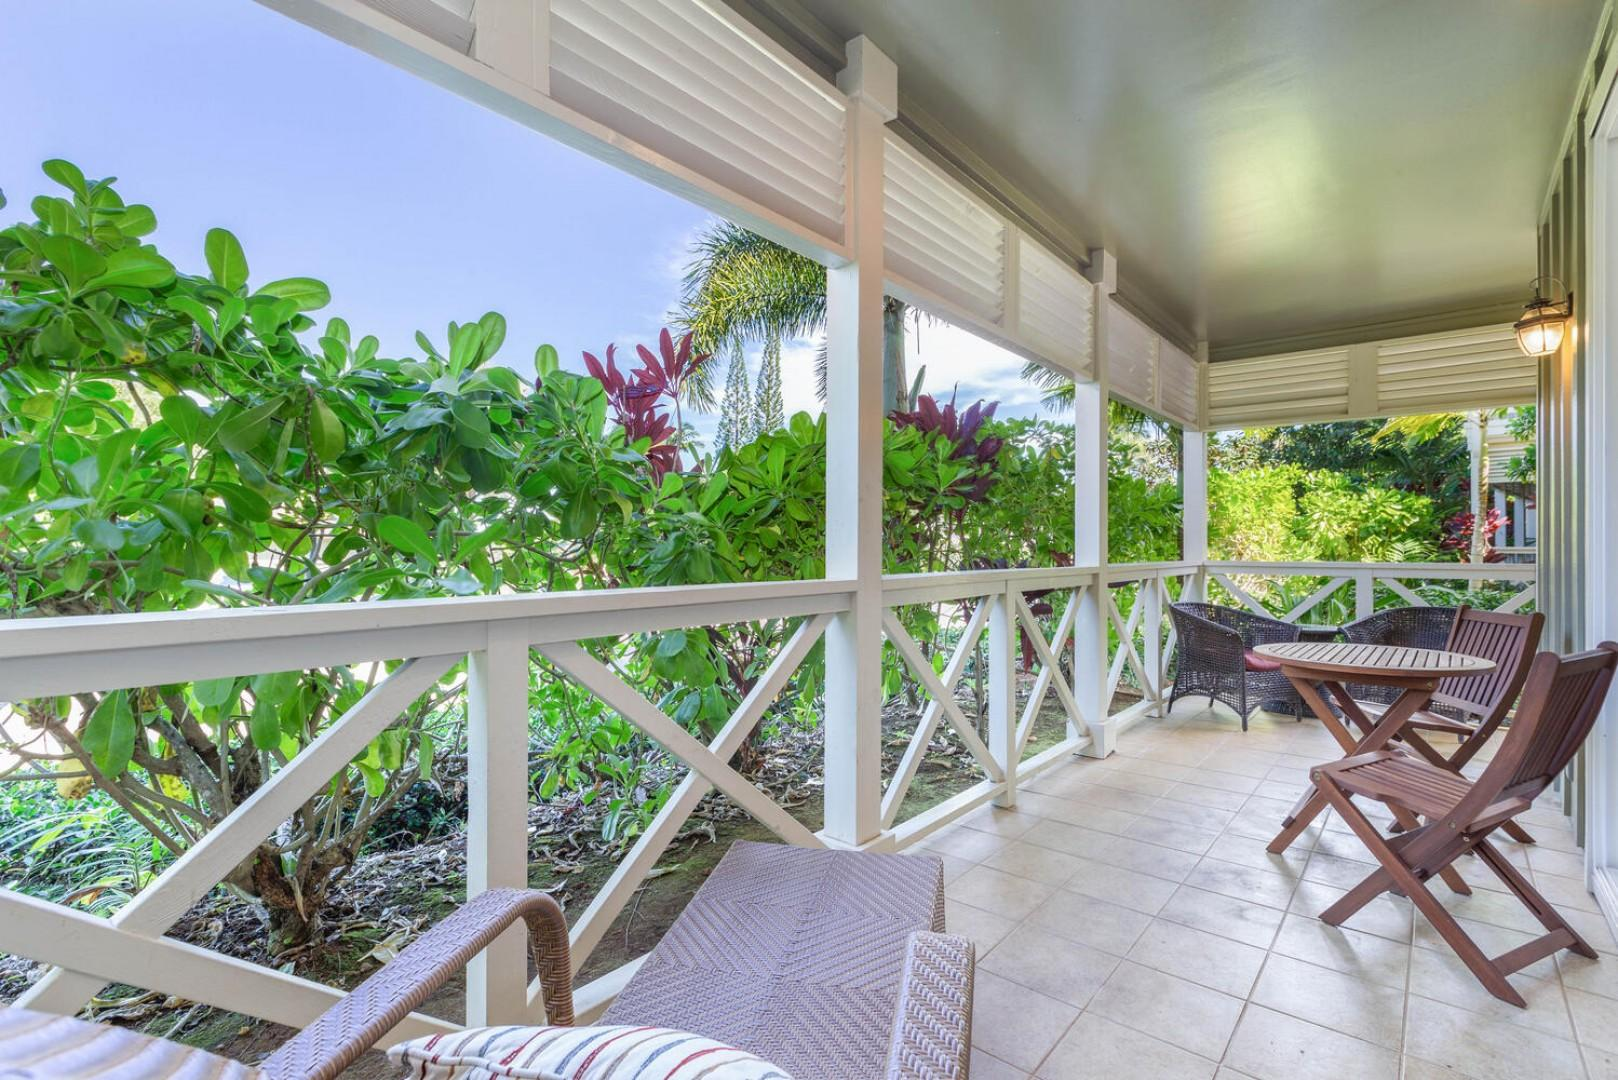 Private lanai with outdoor seating